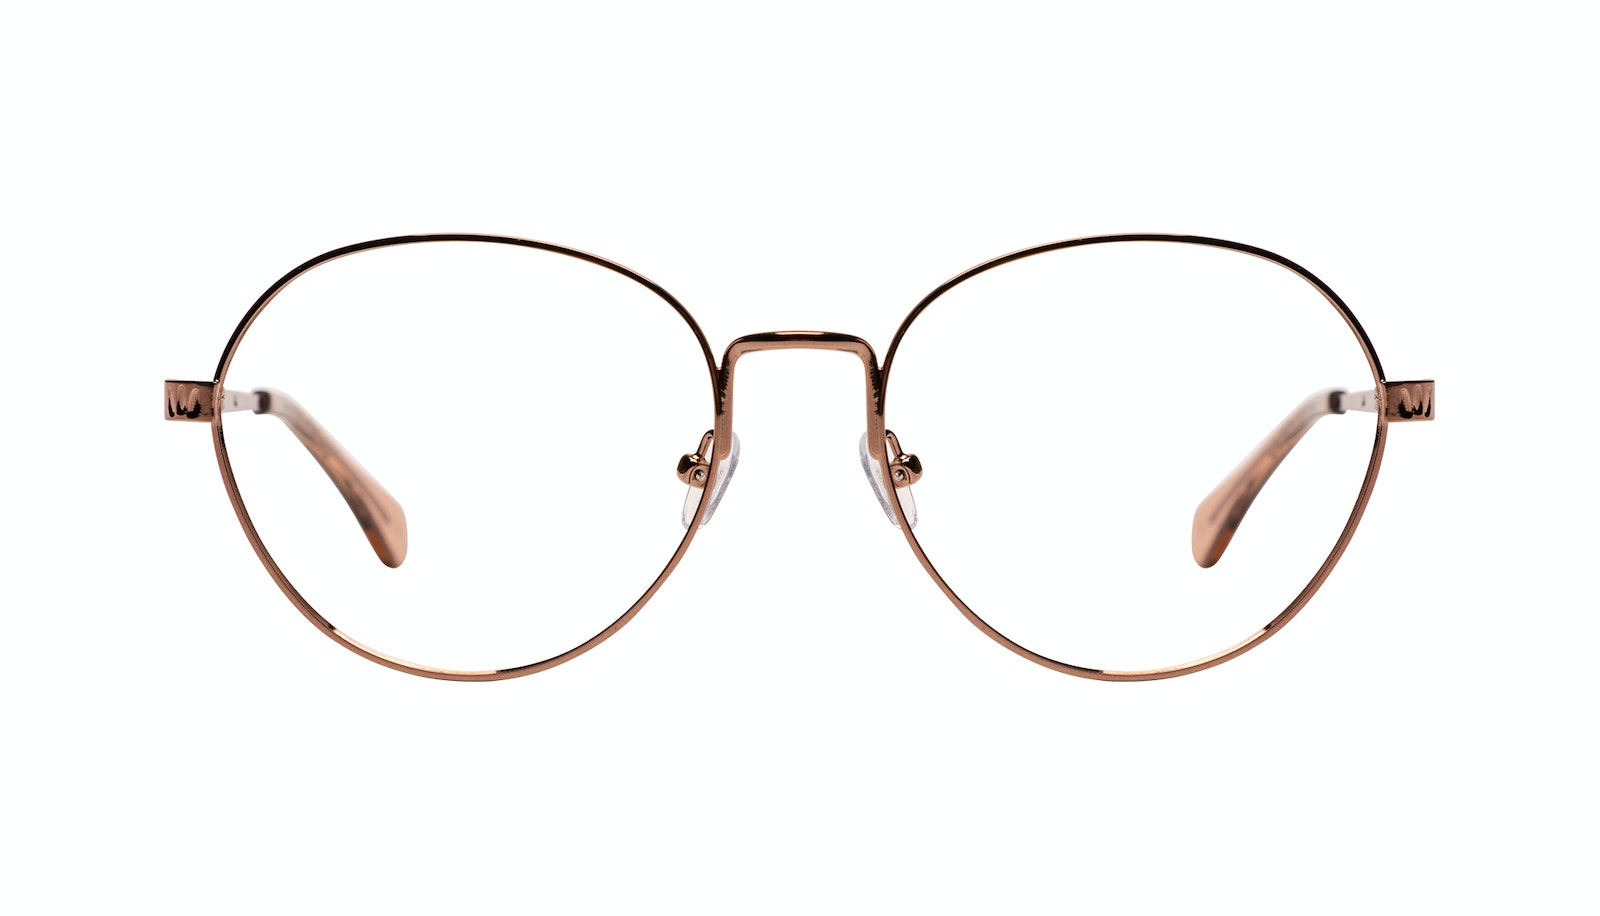 Affordable Fashion Glasses Round Eyeglasses Women Brace L Rose Gold